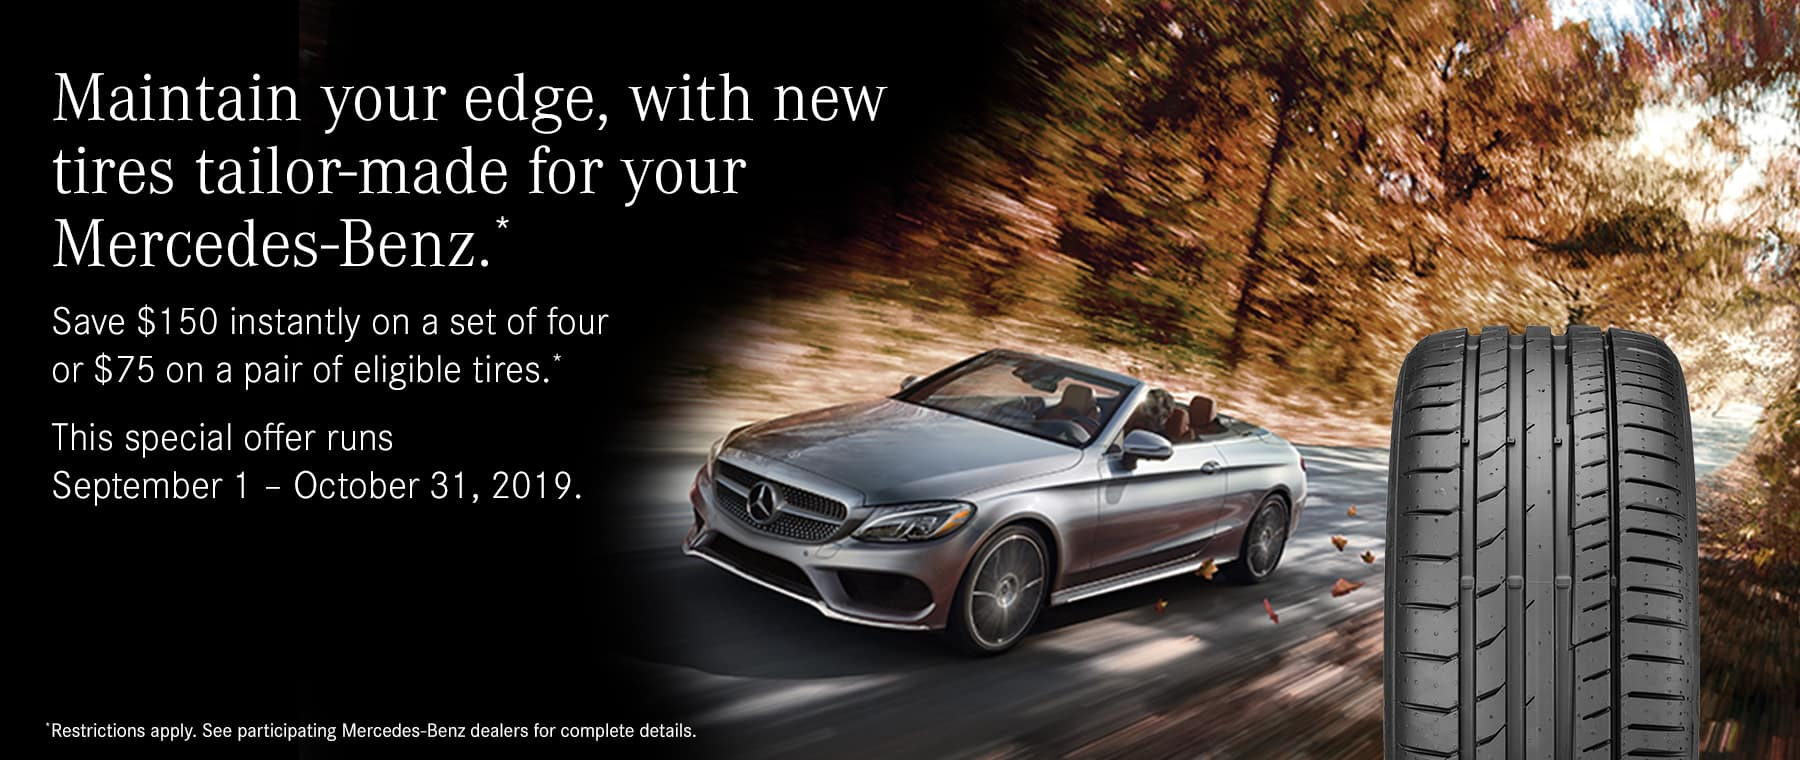 tires tailor-made for your mercedes-benz